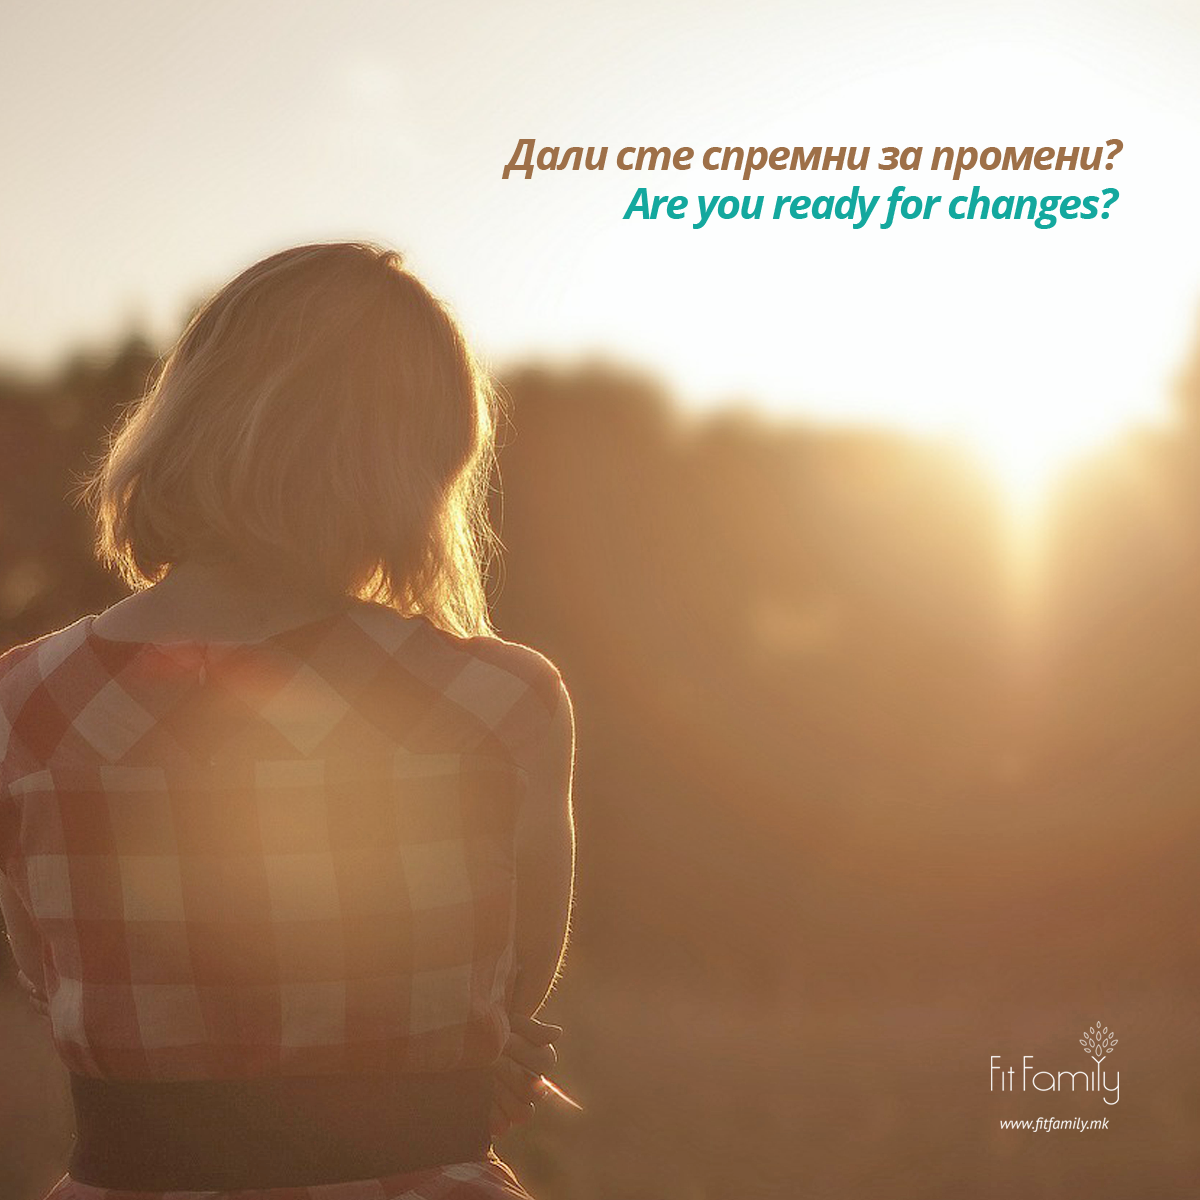 are you ready for changes?